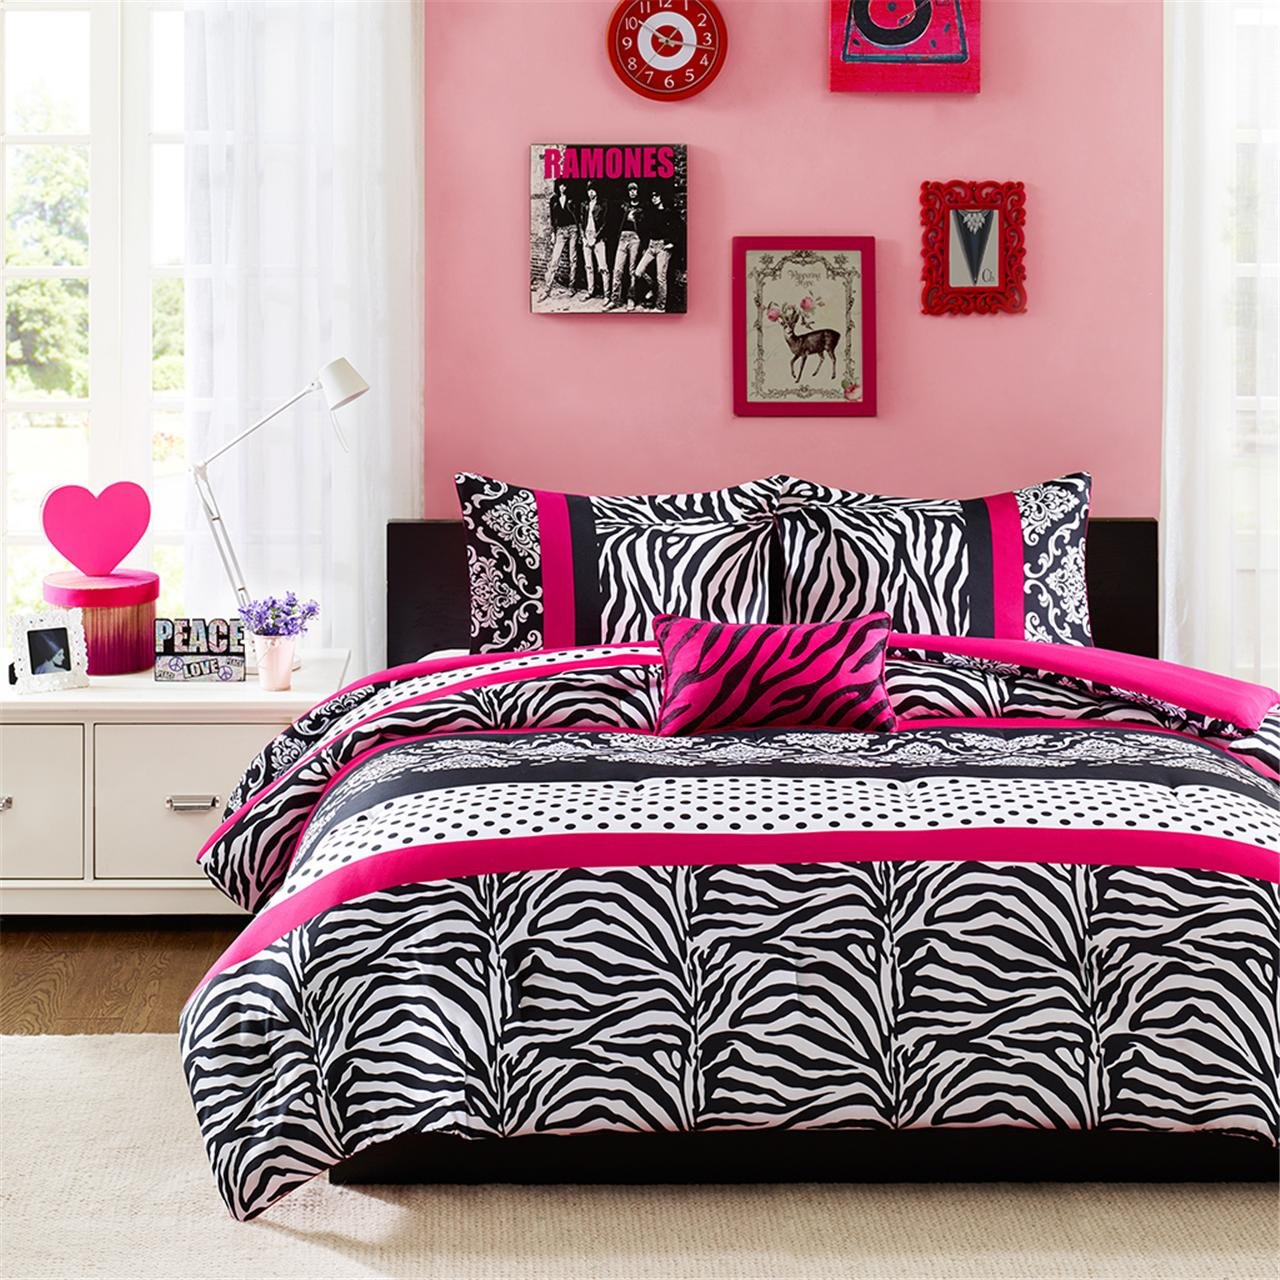 Pink and white polka dot bedding - Amazon Com Mi Zone Reagan Comforter Set Pink Full Queen Home Kitchen